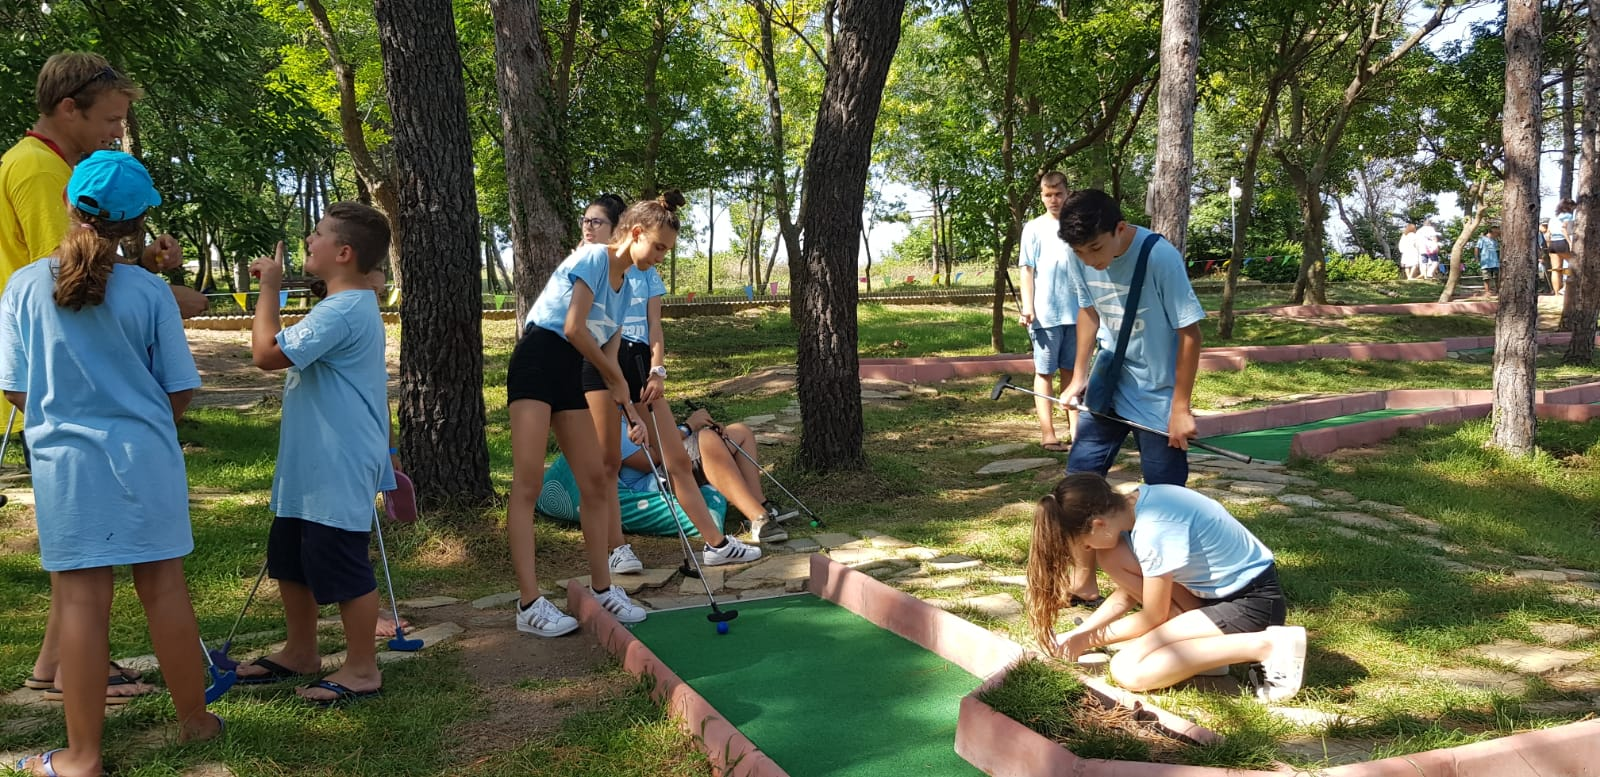 Z camp, day 19 - mini golf in Tsarevo - group of children with blue T-shirt of Z camp and girl aiming at the ball